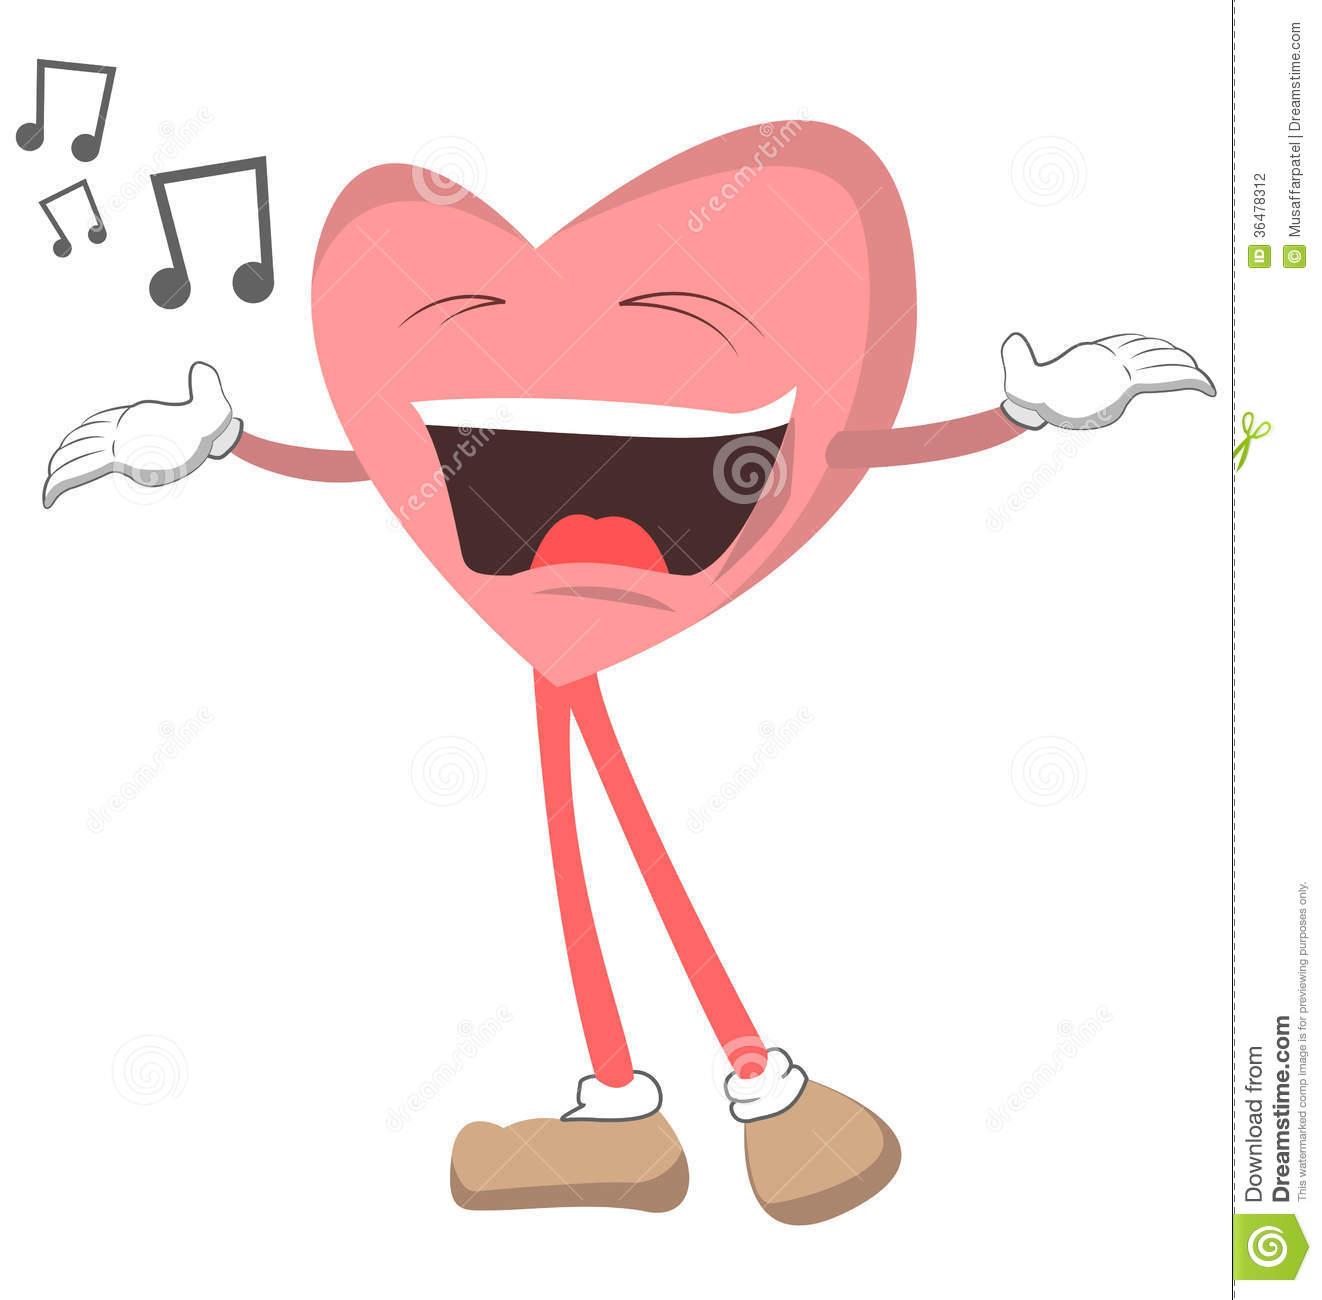 Stock Photography: Singing Heart. Image: 36478312